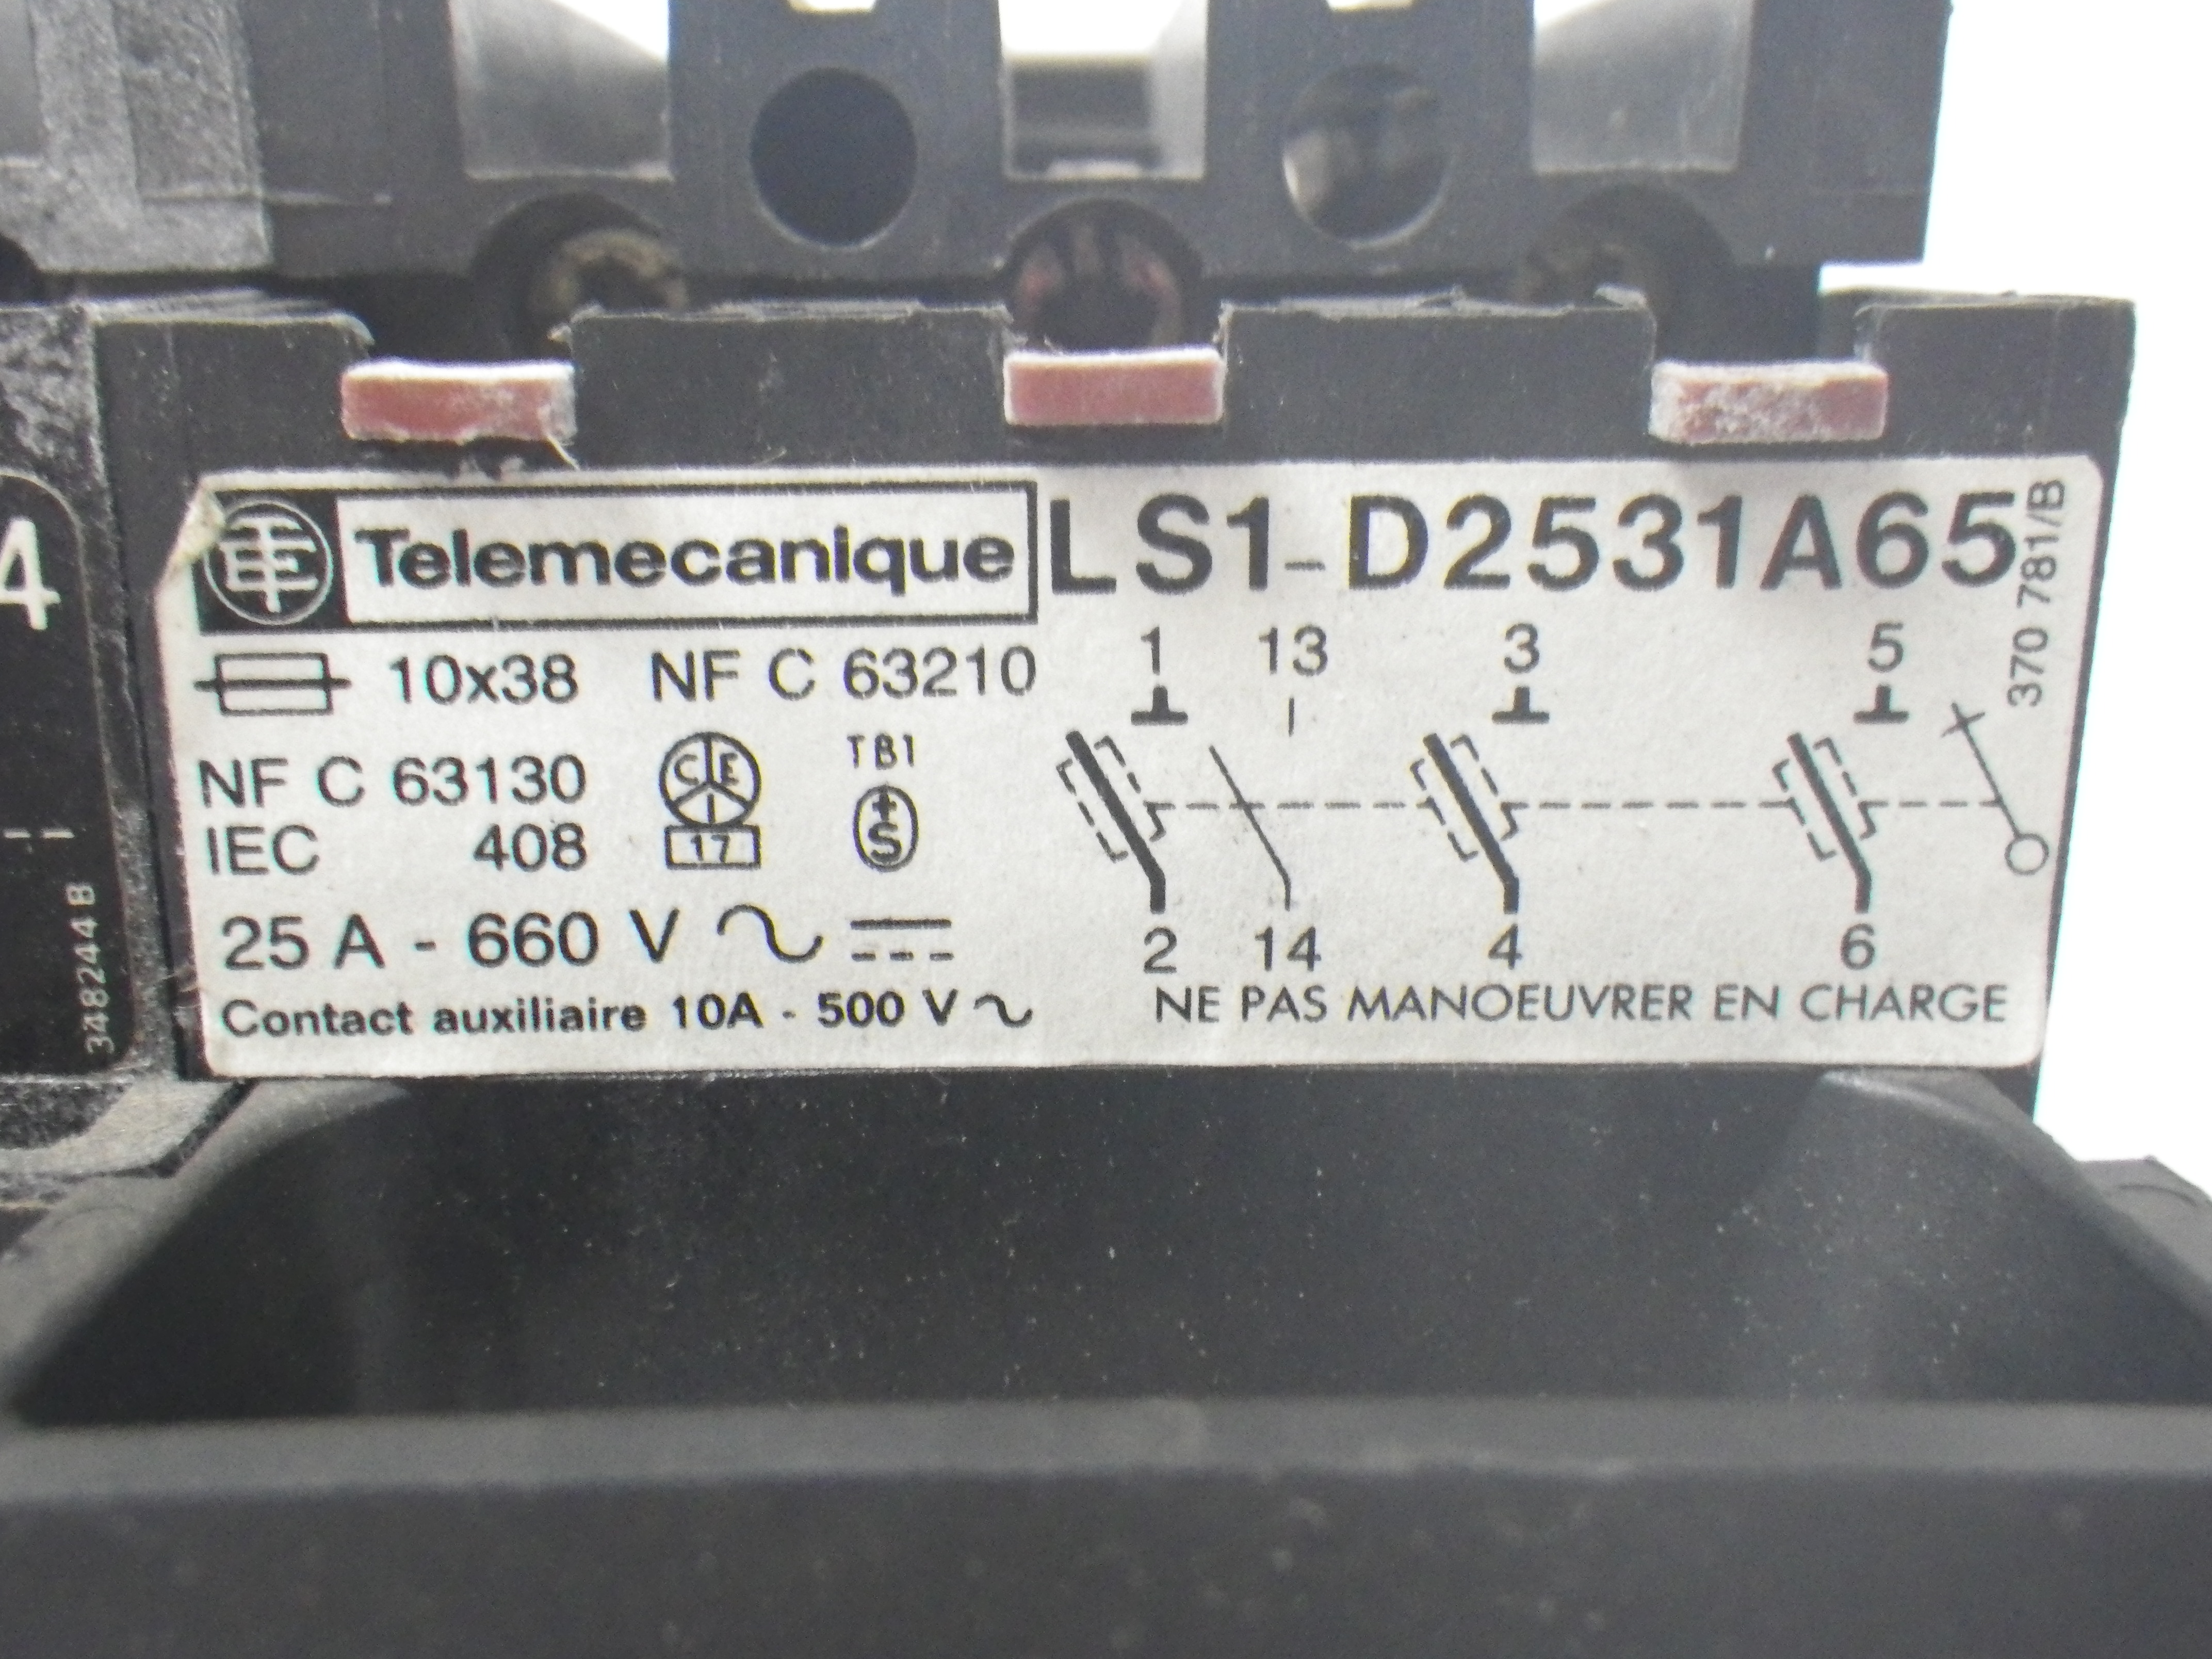 ls1-d2531a65-telemacanique-25a-660v-fuse-holder-w-